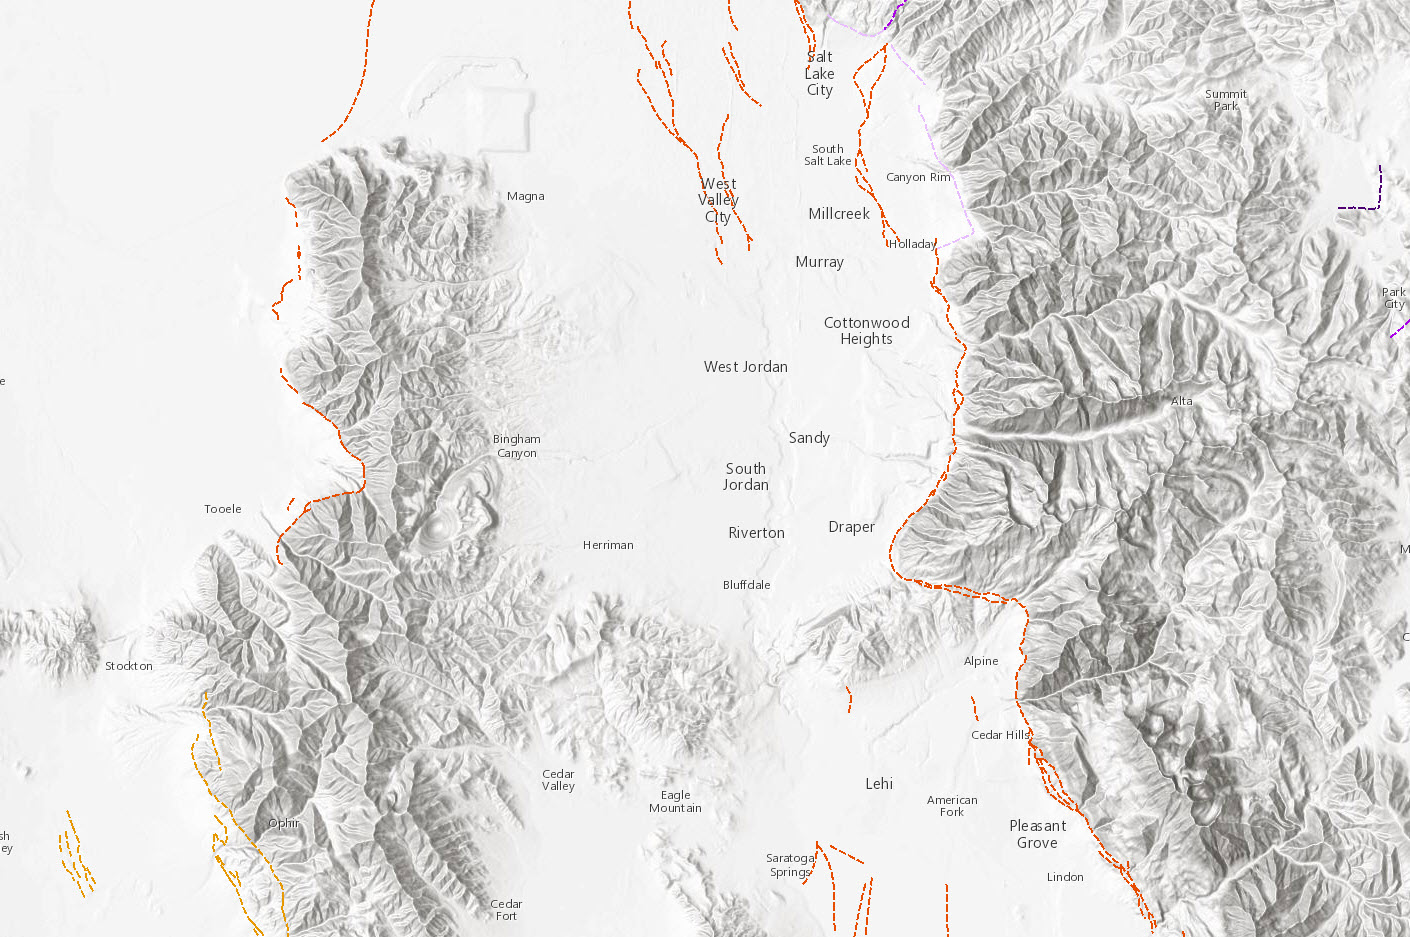 Identifying the location of the USGS earthquake faults over Utah (USA).